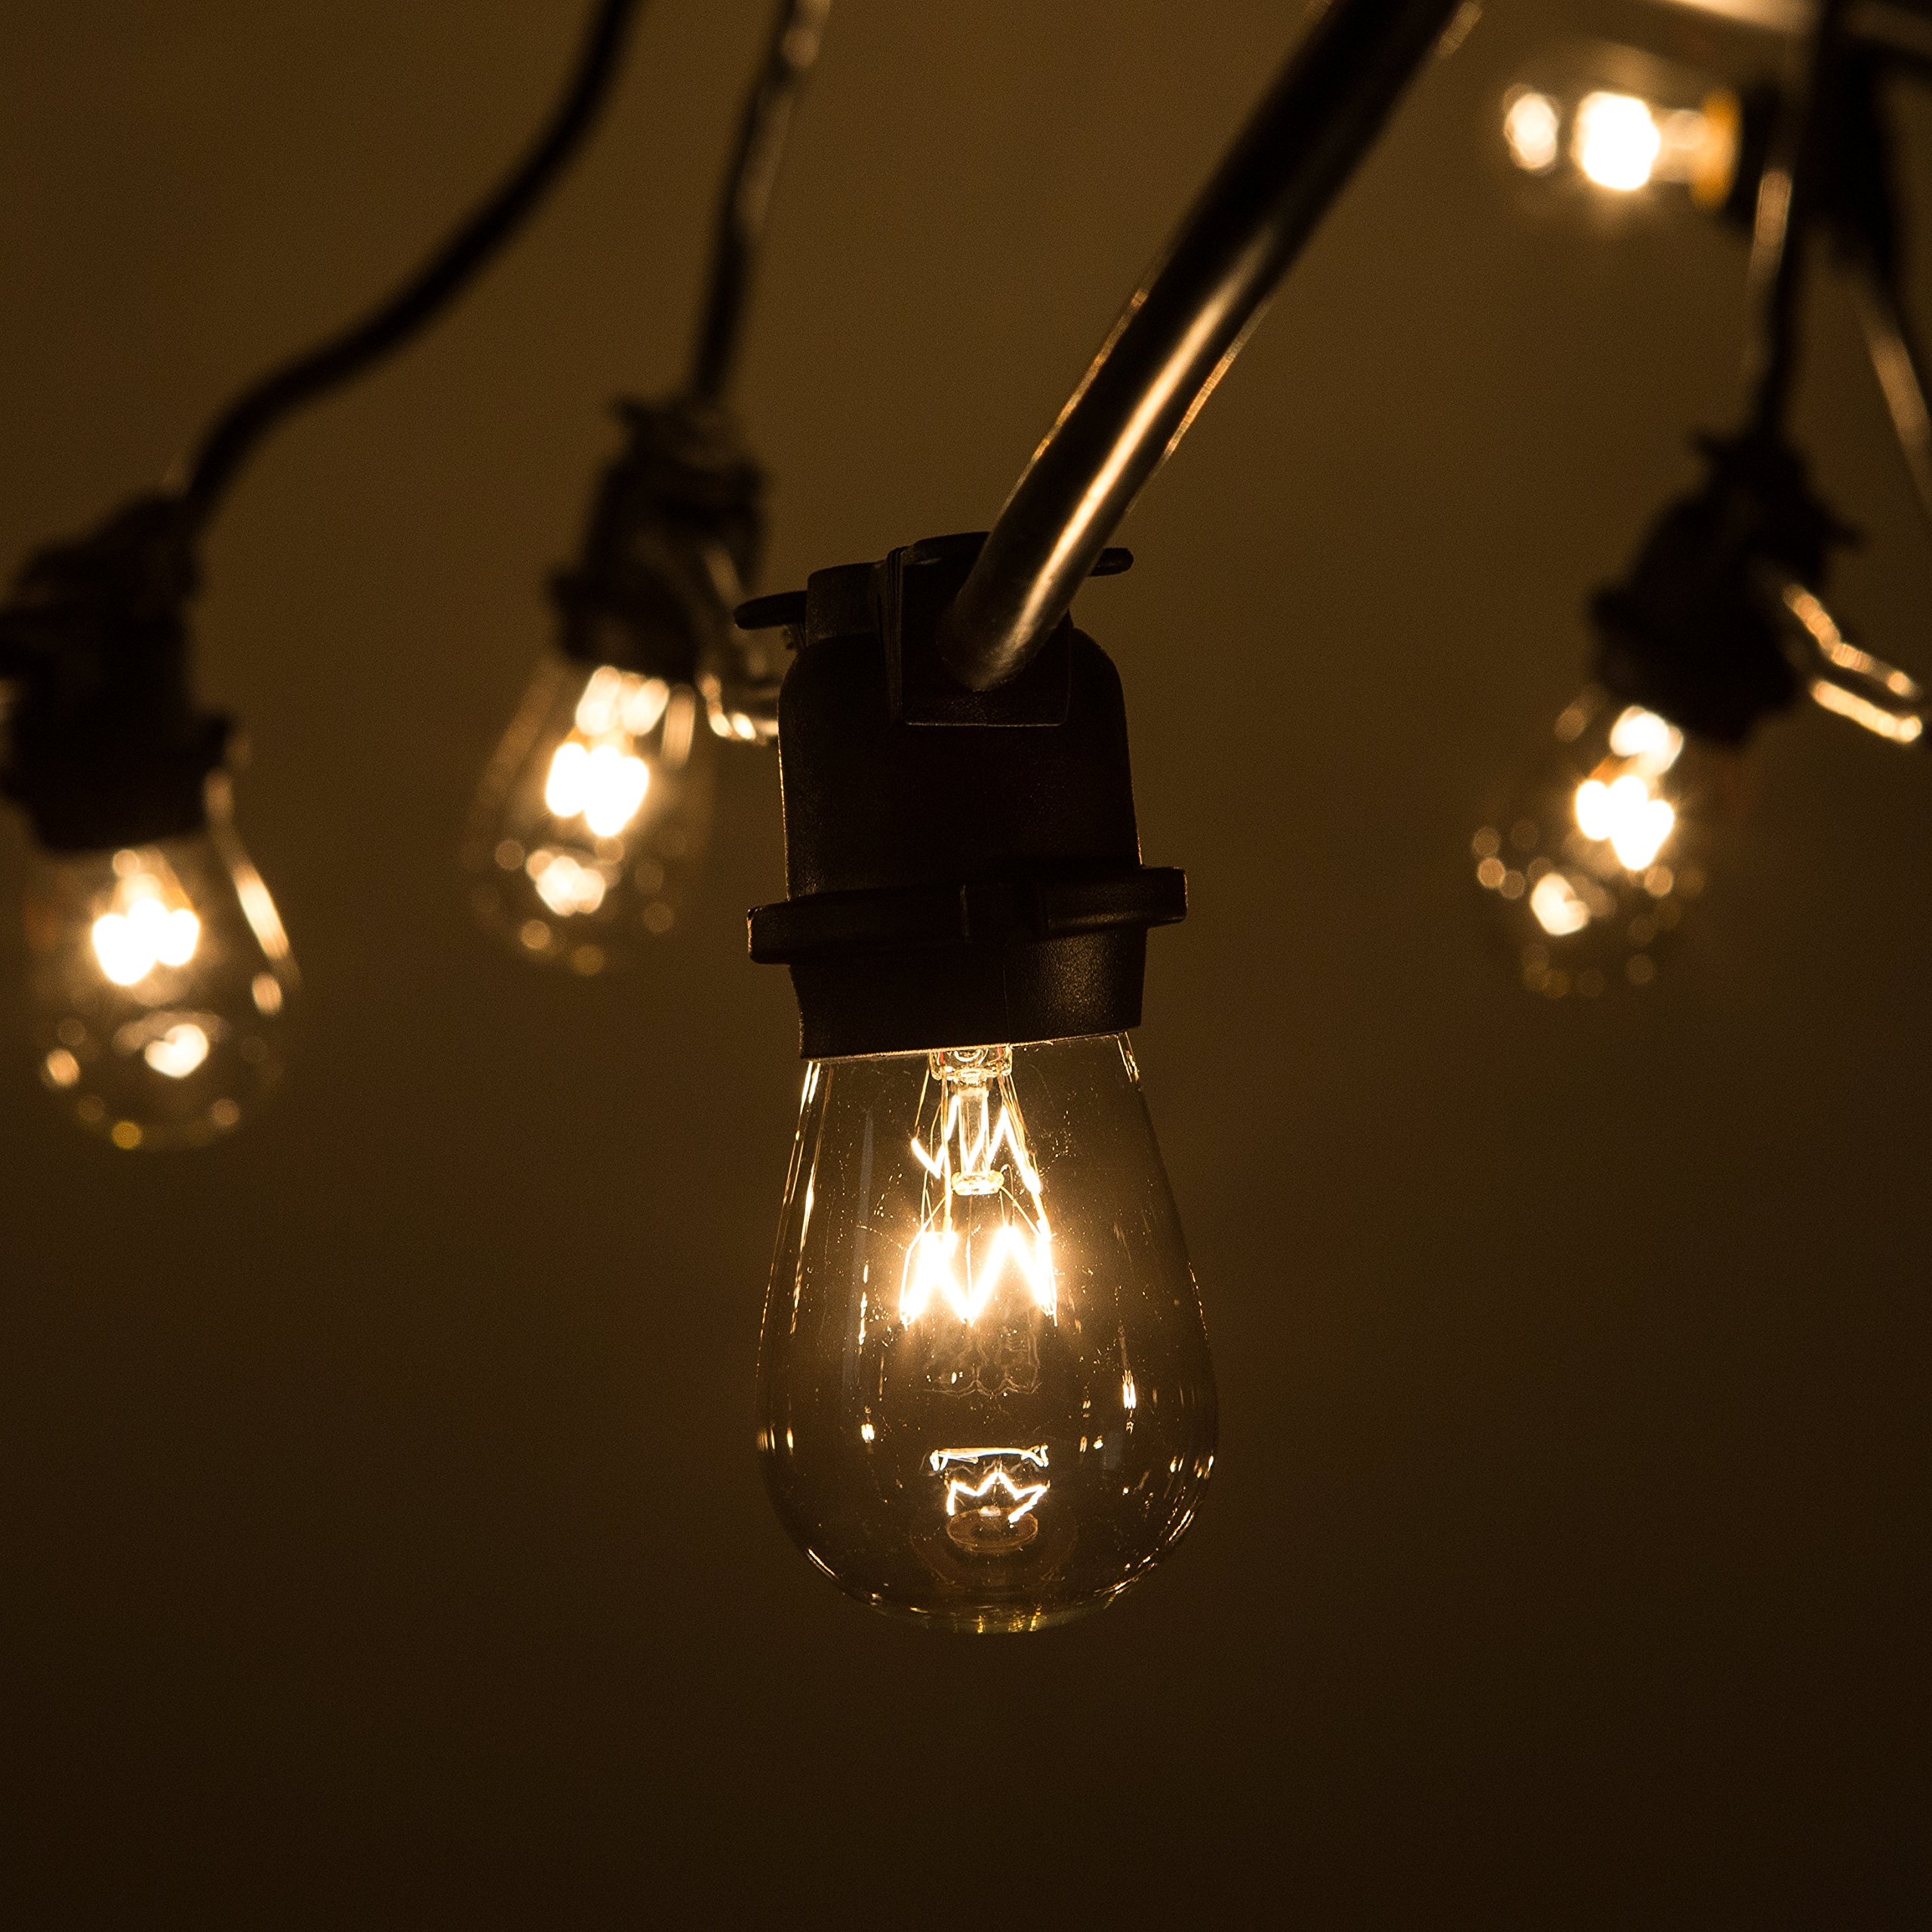 Hometown Evolution, Inc. Commercial E26 String Lights with 14 Gauge Wire (100 Foot 50 Socket, S14 11 Watt Clear Bulb)